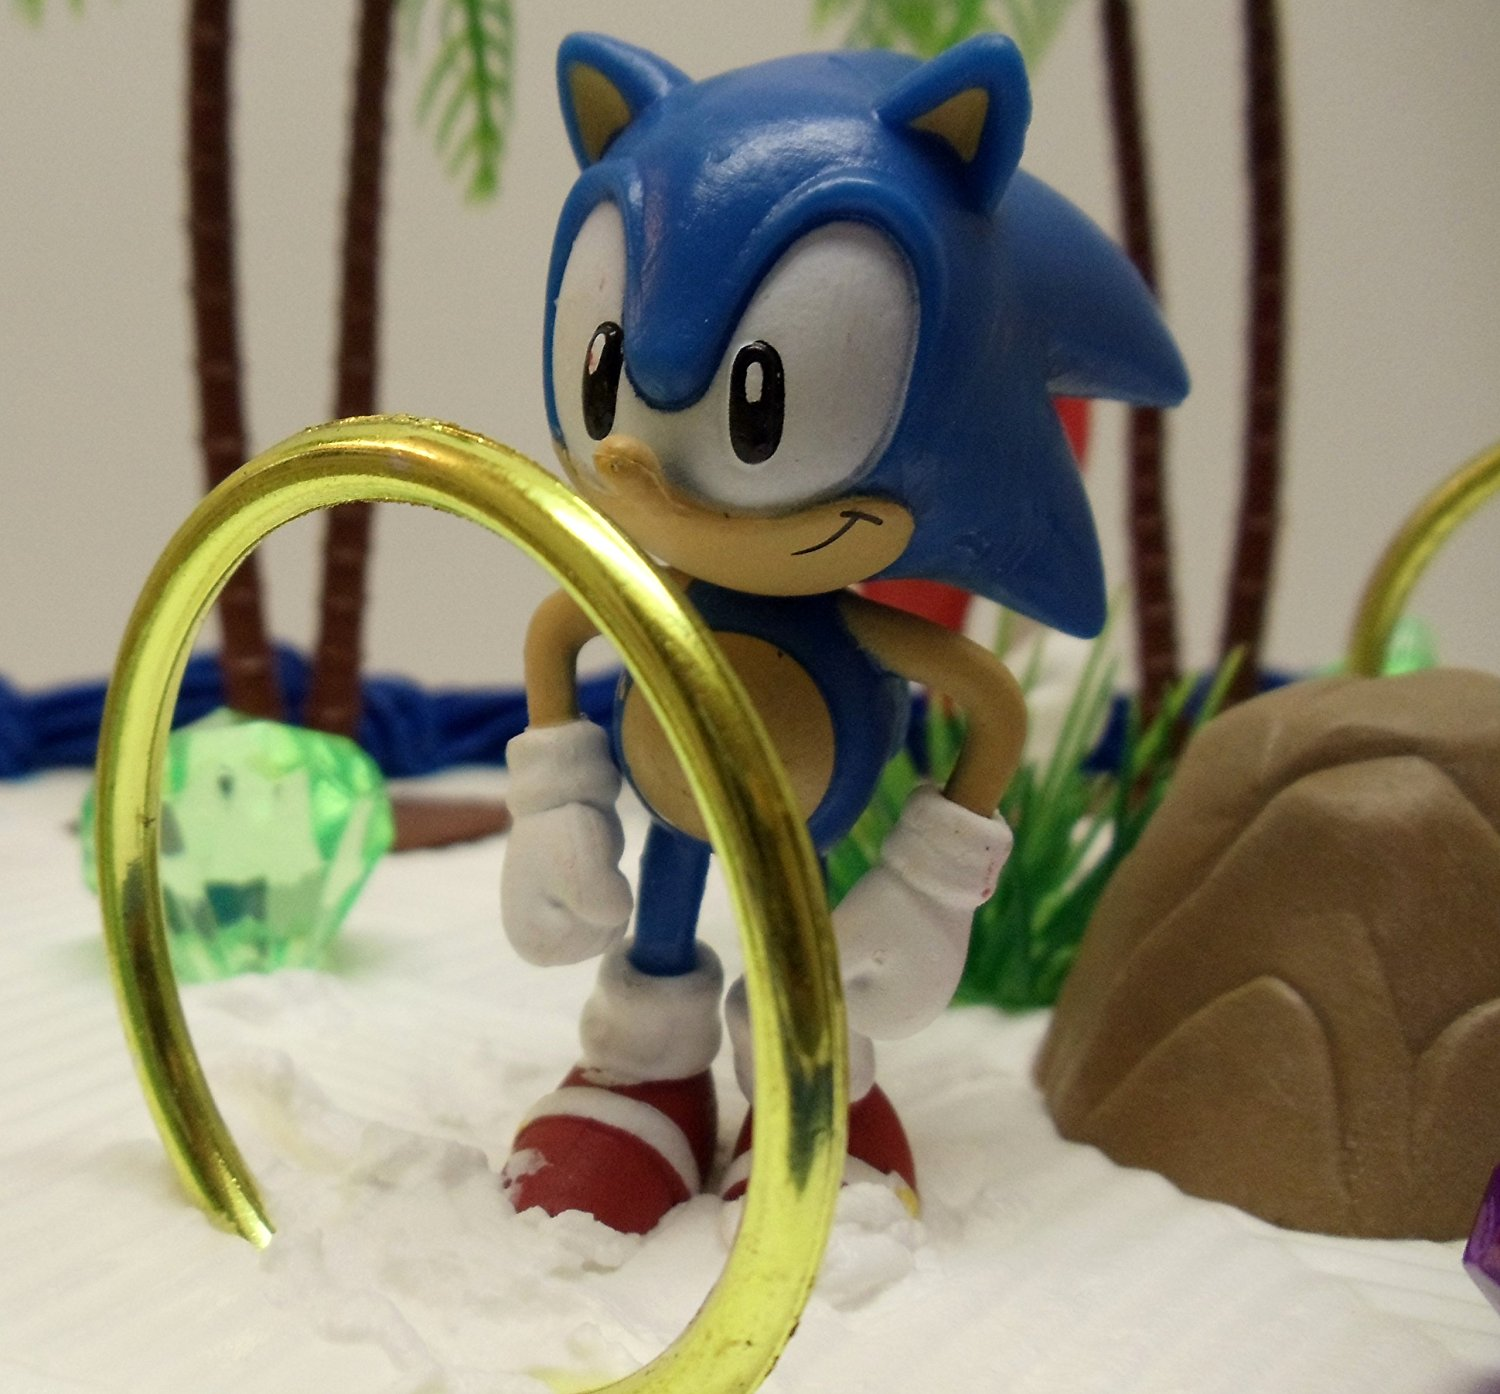 Unique 12 Piece Classic Sonic The Hedgehog Cake Topper Set Featuring 4 Sonic Rings Super Sonic Amy Rose Miles N9 Free Image